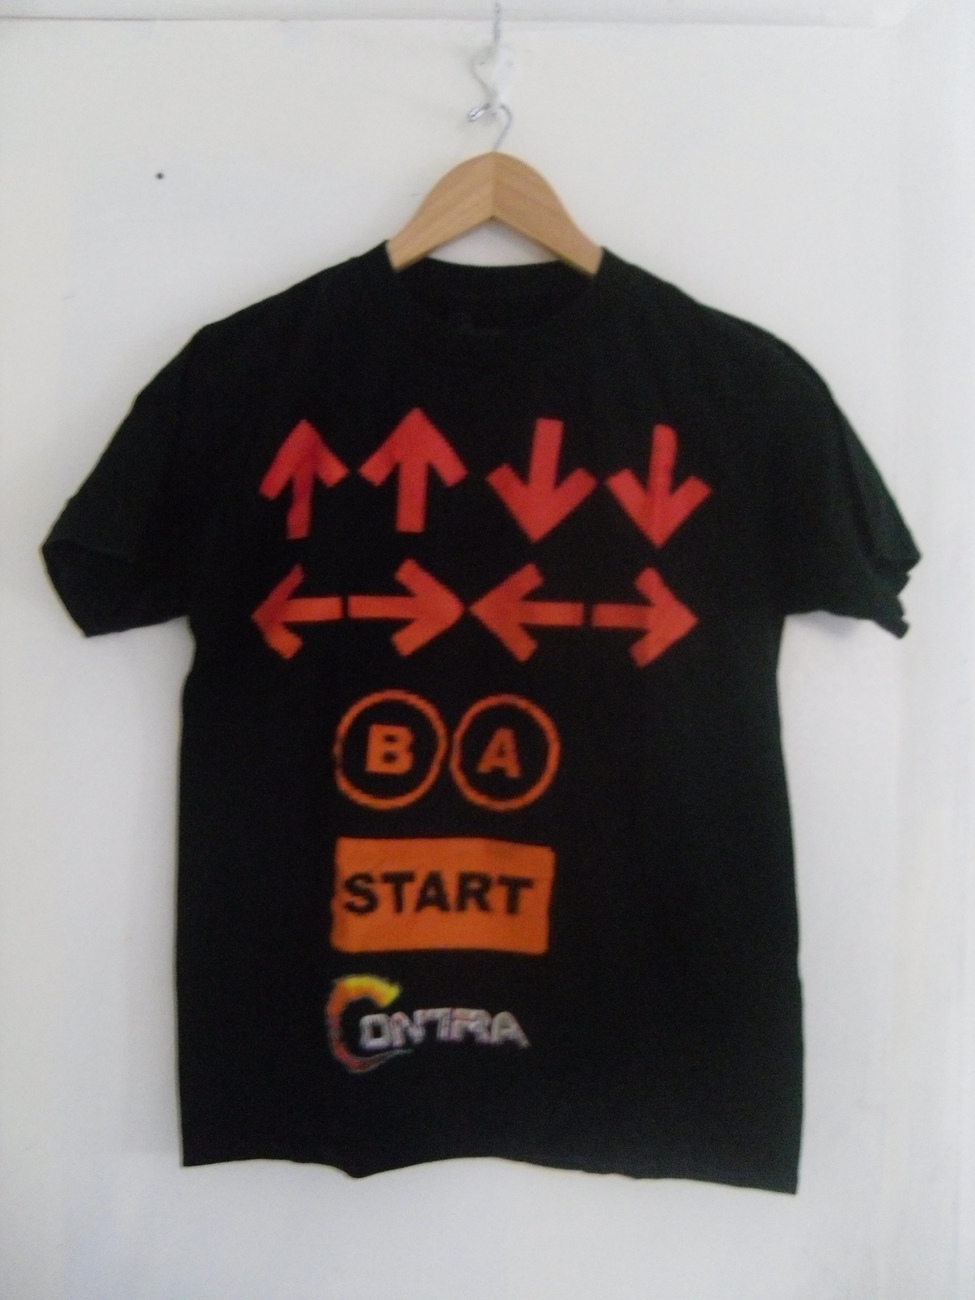 Contra Code Konami Code Video Game Black T Shirt Hot Topic Unisex Size XS NEW